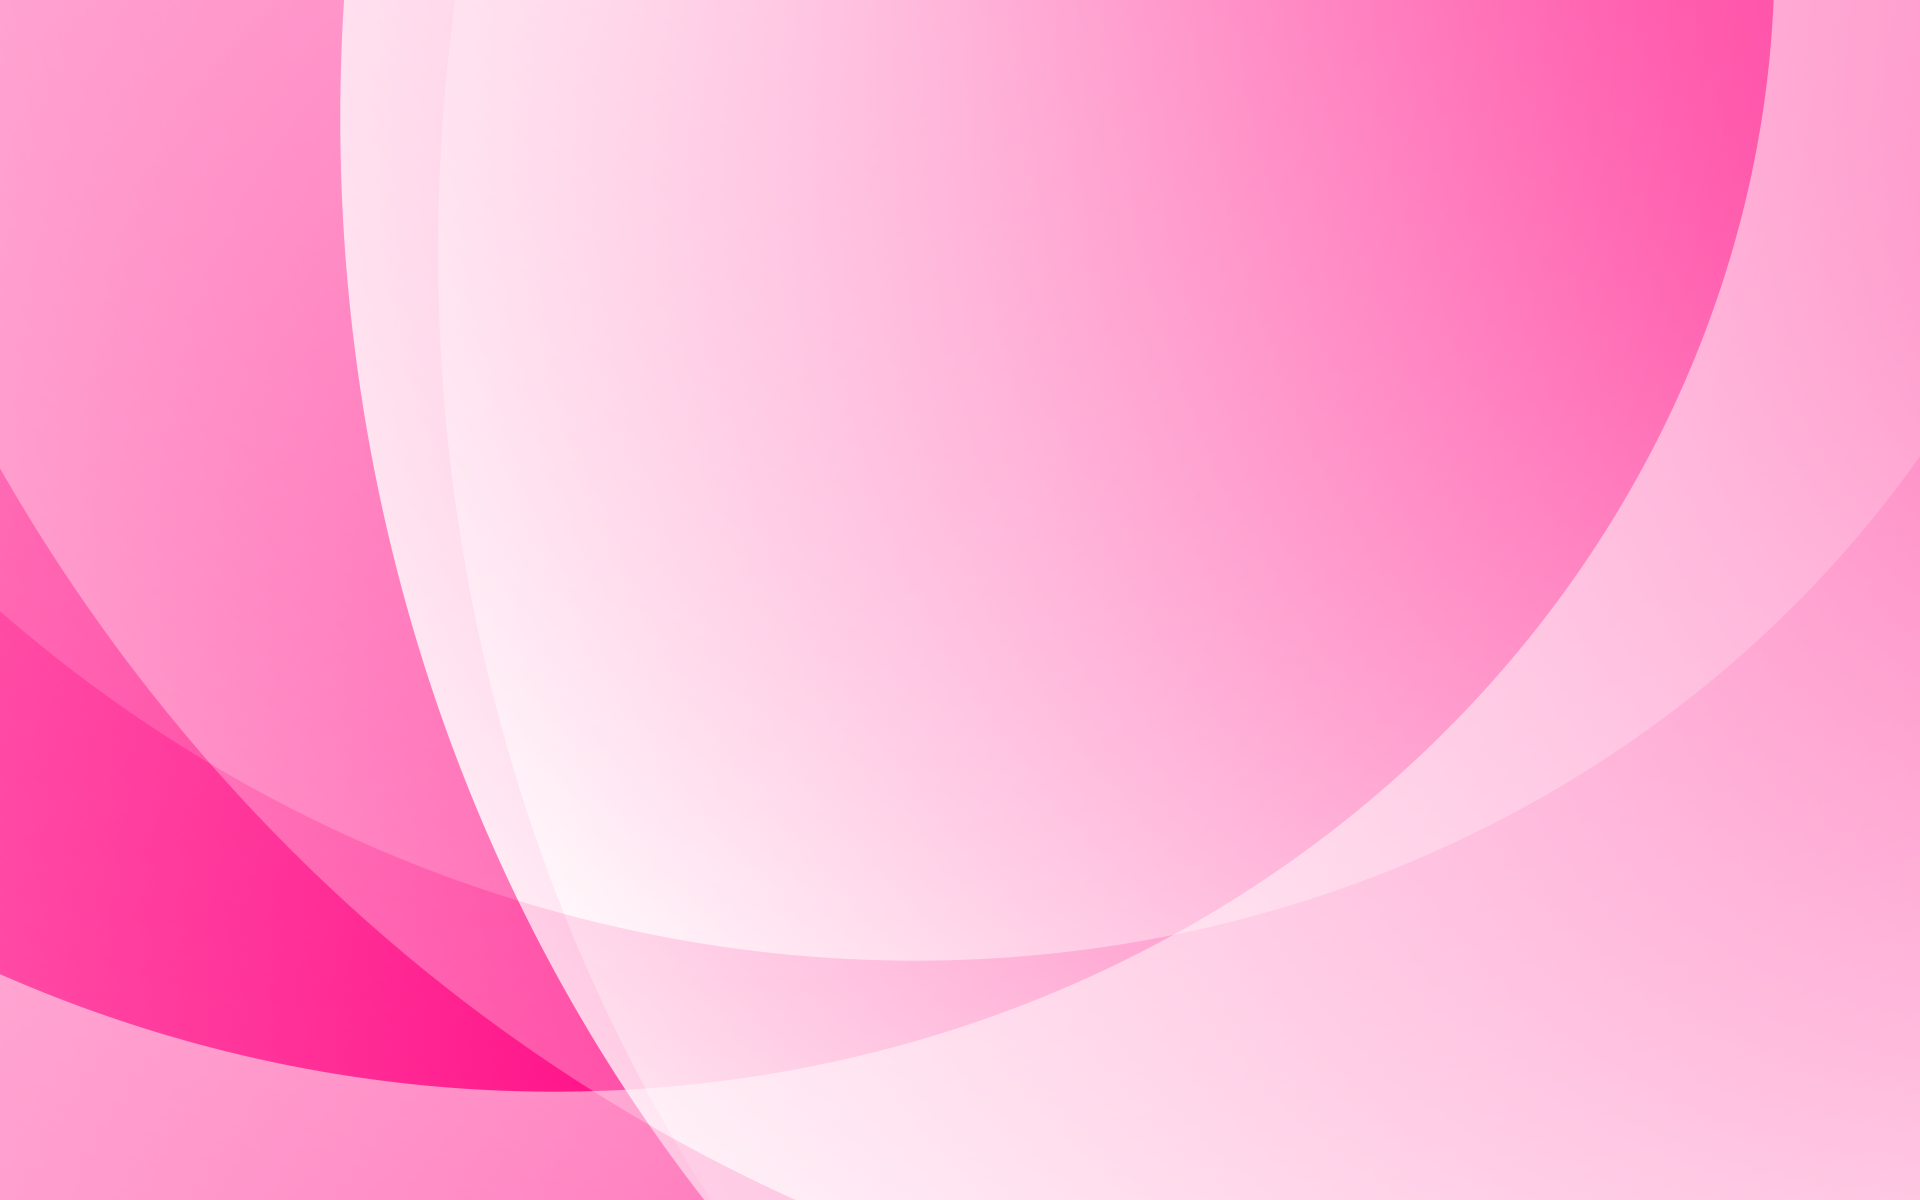 Abstract Wallpaper Pink